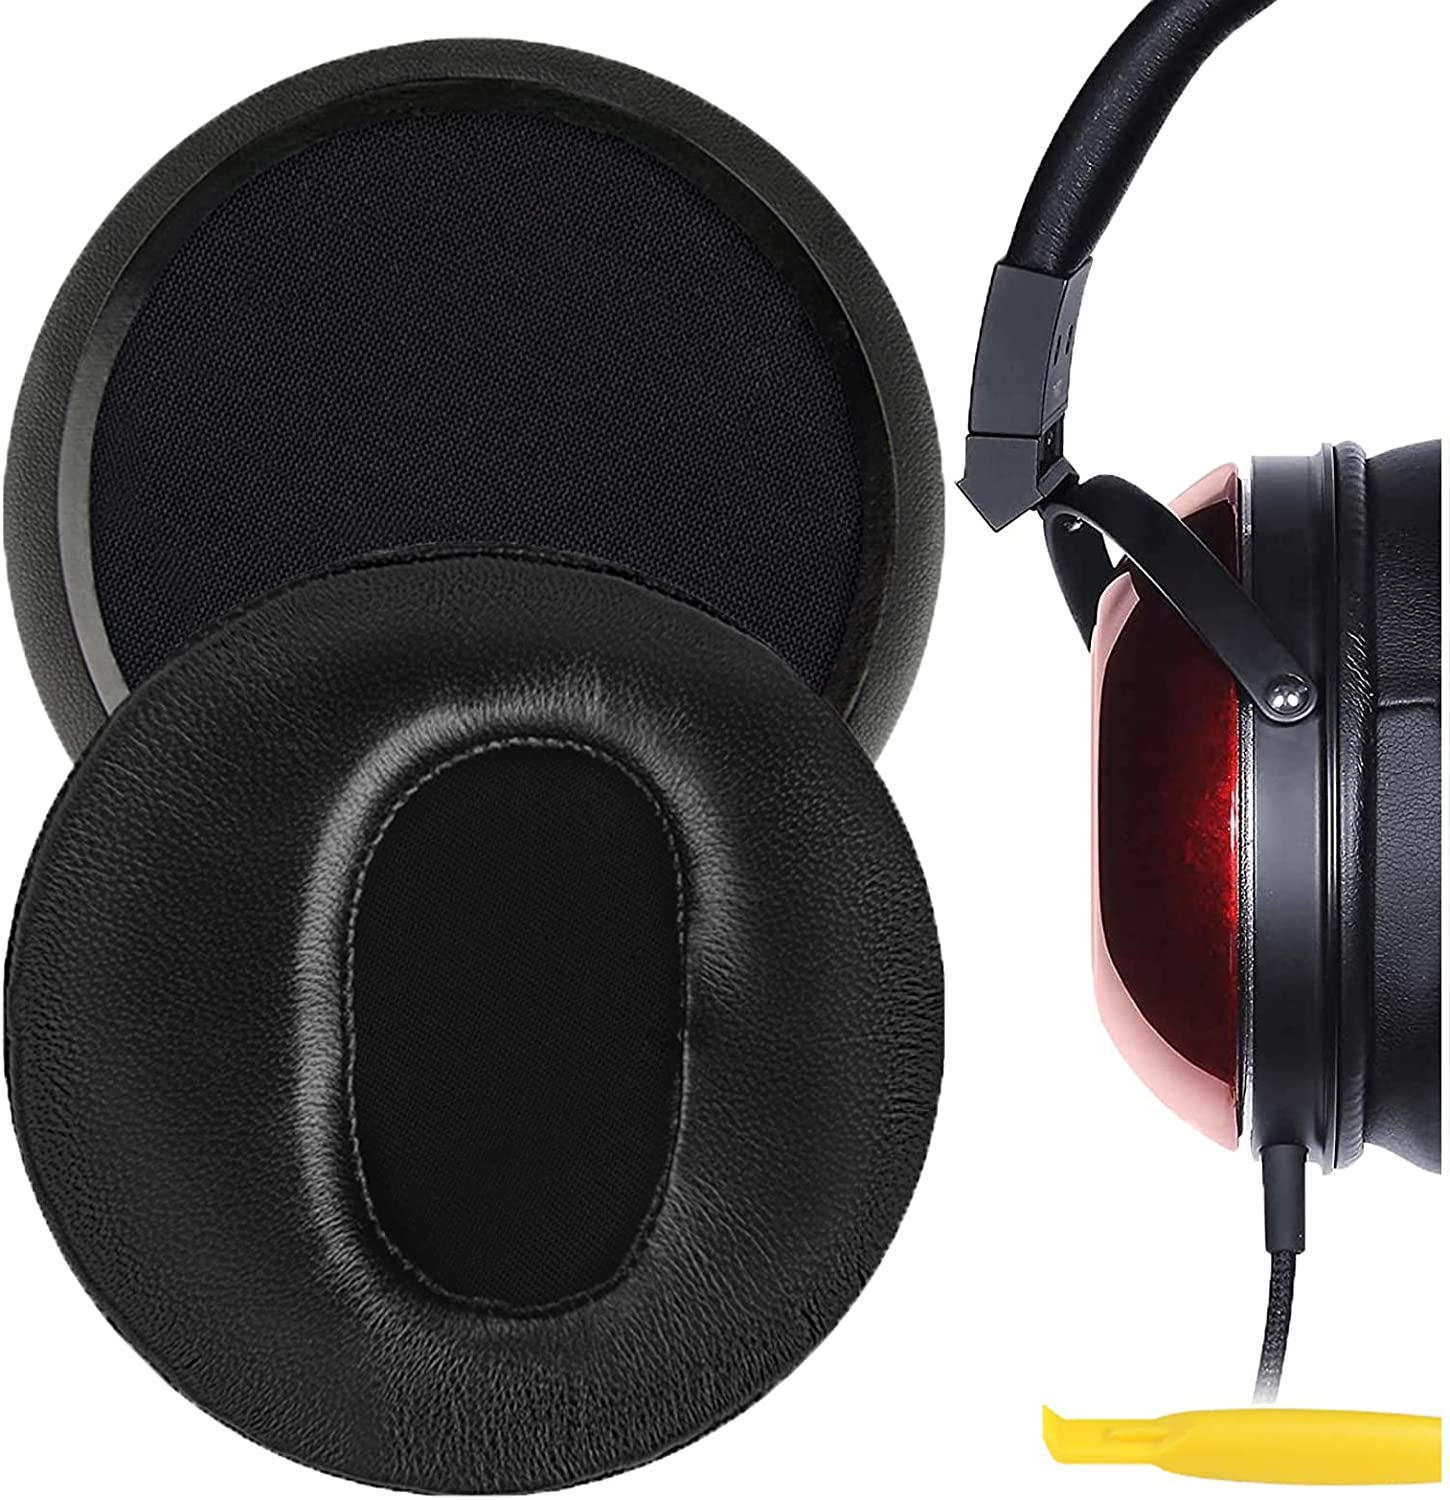 Geekria Elite Sheepskin Replacement Ear Pads T TH600 Outlet Very popular! sale feature for Fostex